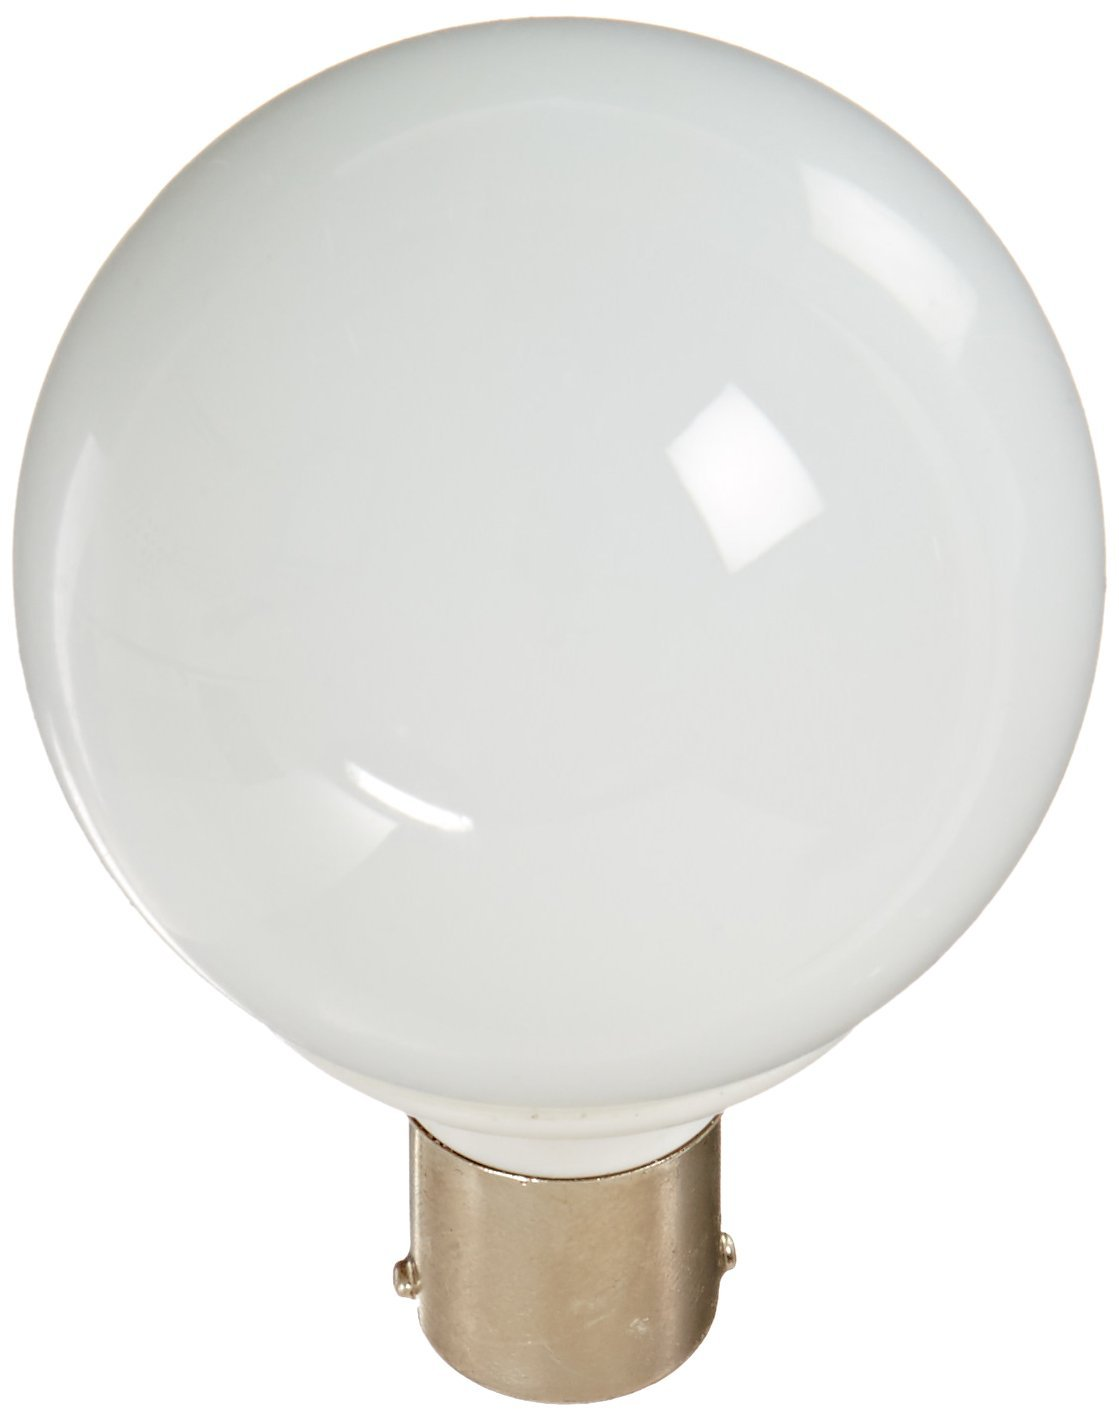 LED Replacement Vanity Light Bulb with 20-99/1156 base 230 Lumens